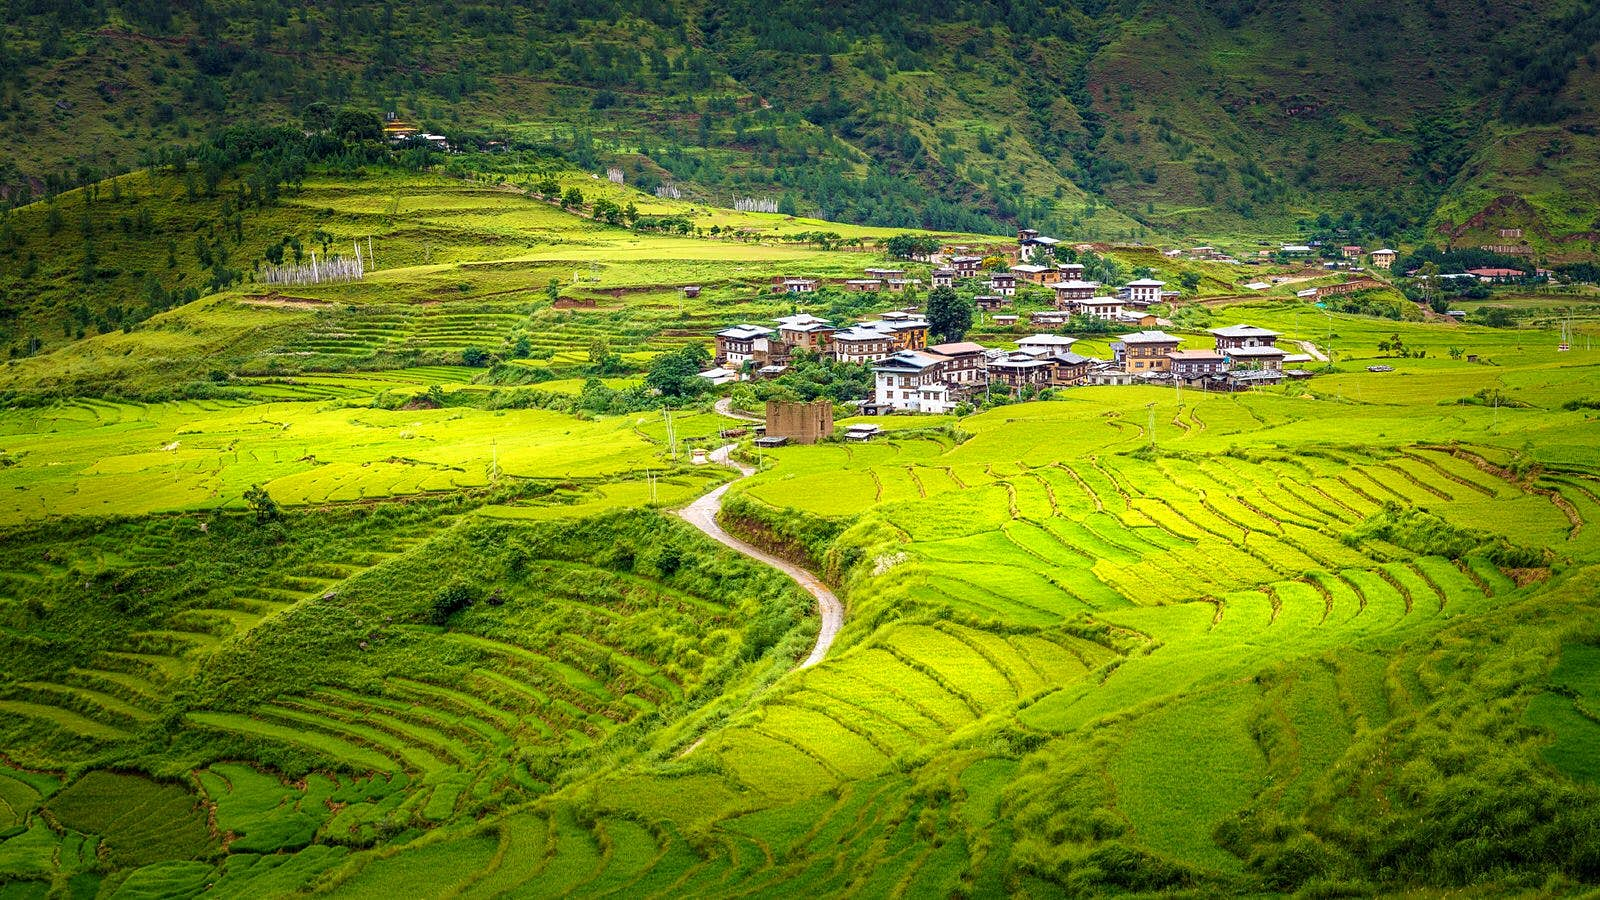 Landscape of green rice terraces in a fertile valley with Chimi Lhakhang Temple in the middle